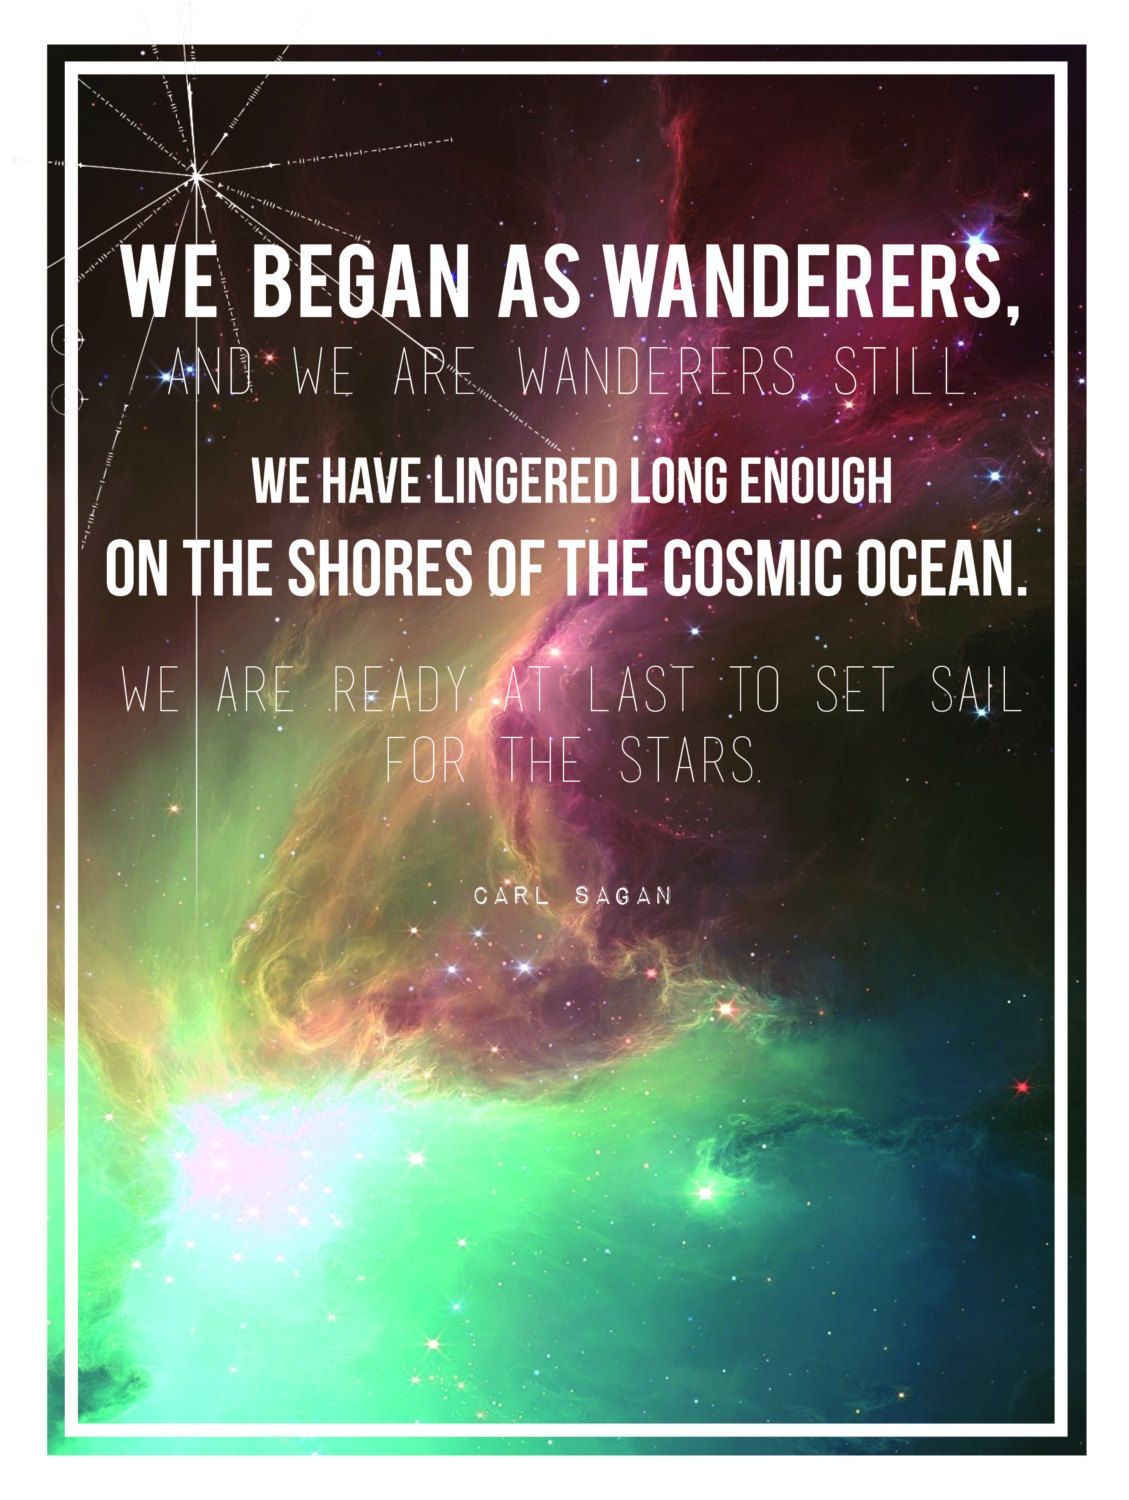 Cosmic Quotes That Will Make You Feel Happy to Be Alive